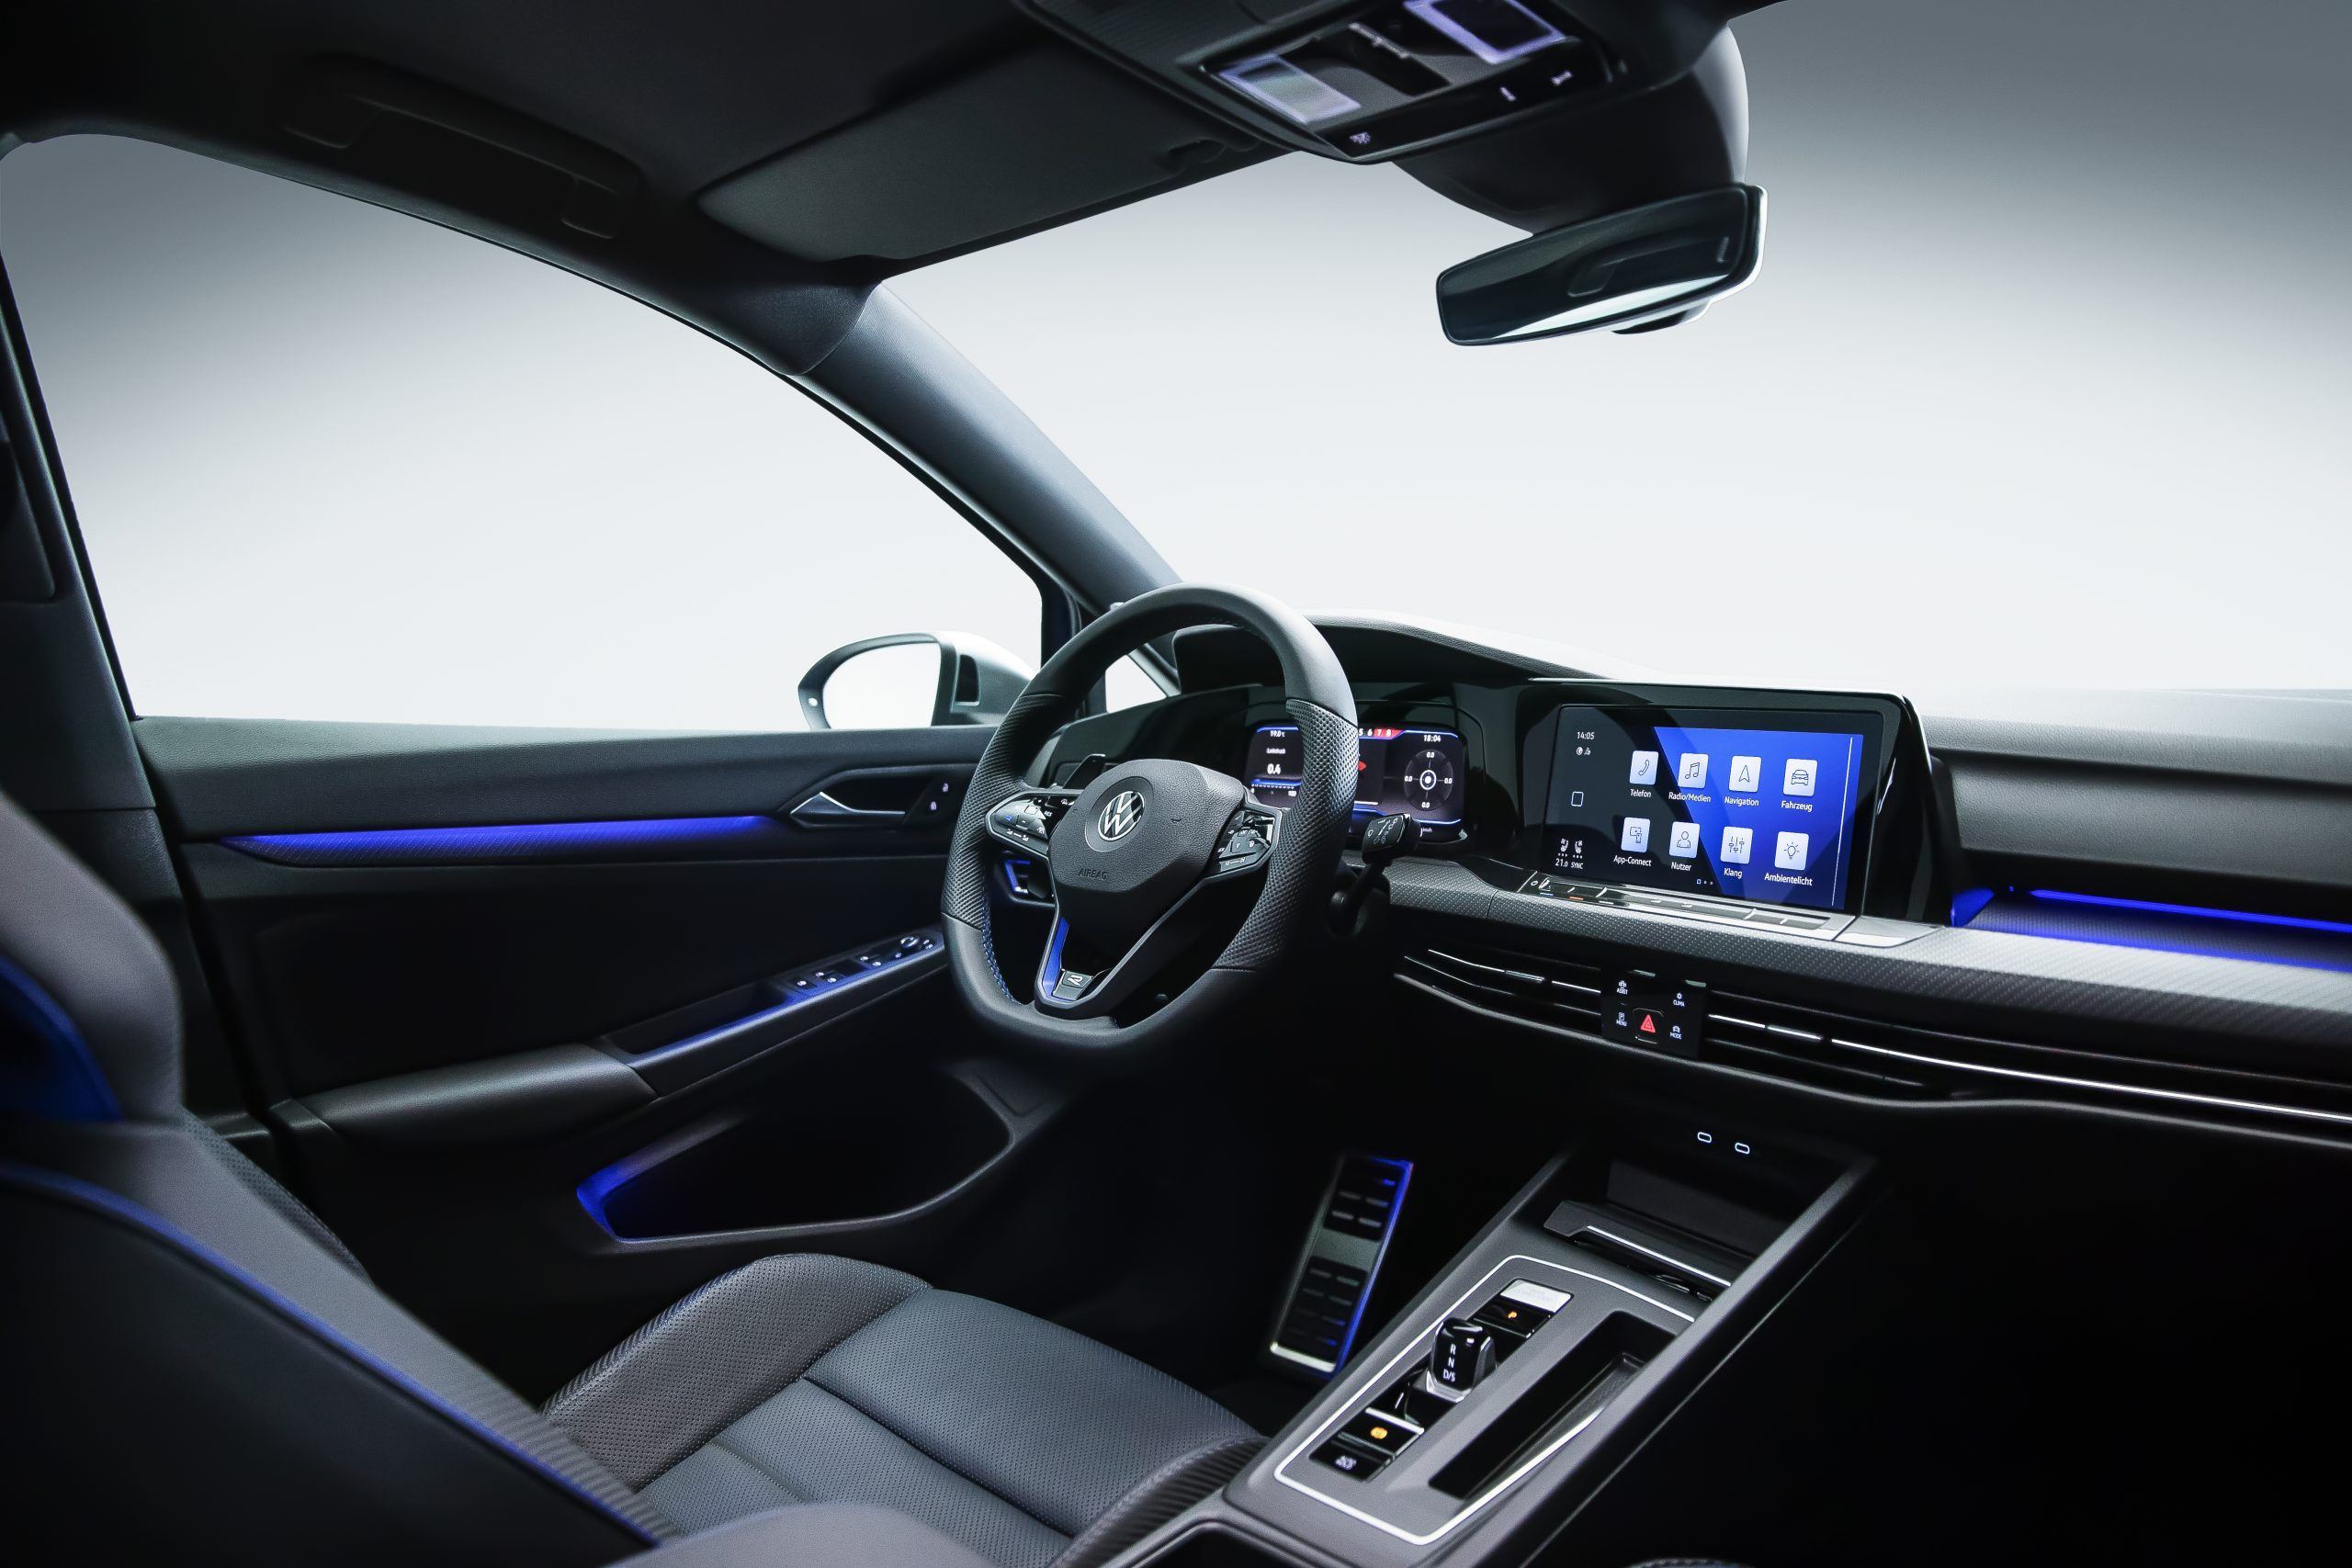 Golf R interior front dash and drivers cockpit